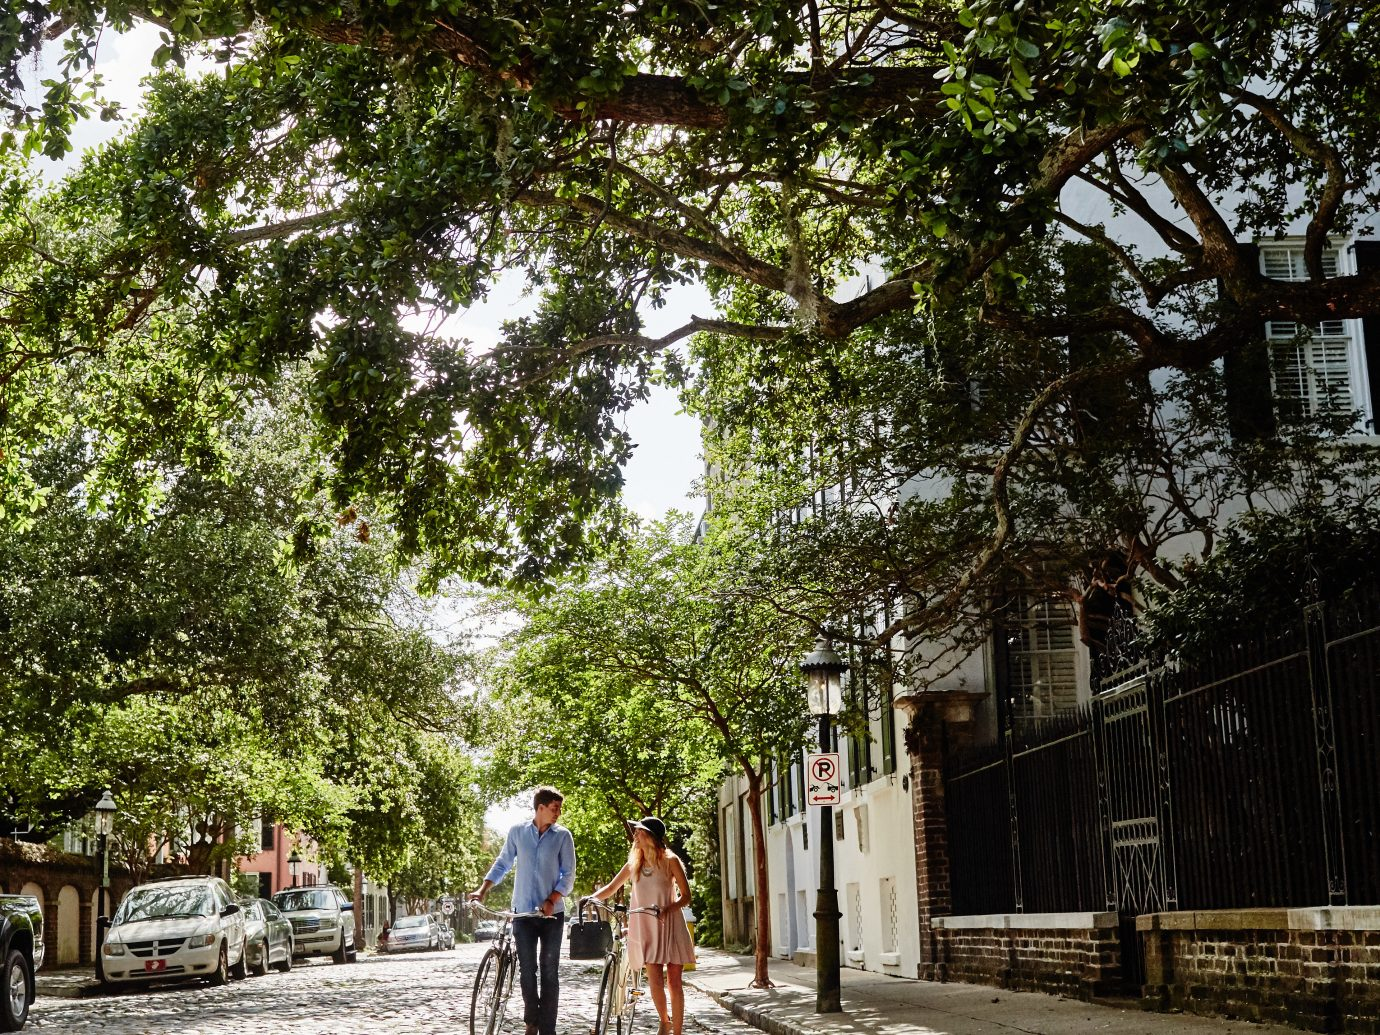 Hotels Romance tree outdoor ground neighbourhood Town road human settlement people woody plant tourism street park way Village sidewalk plant lined day